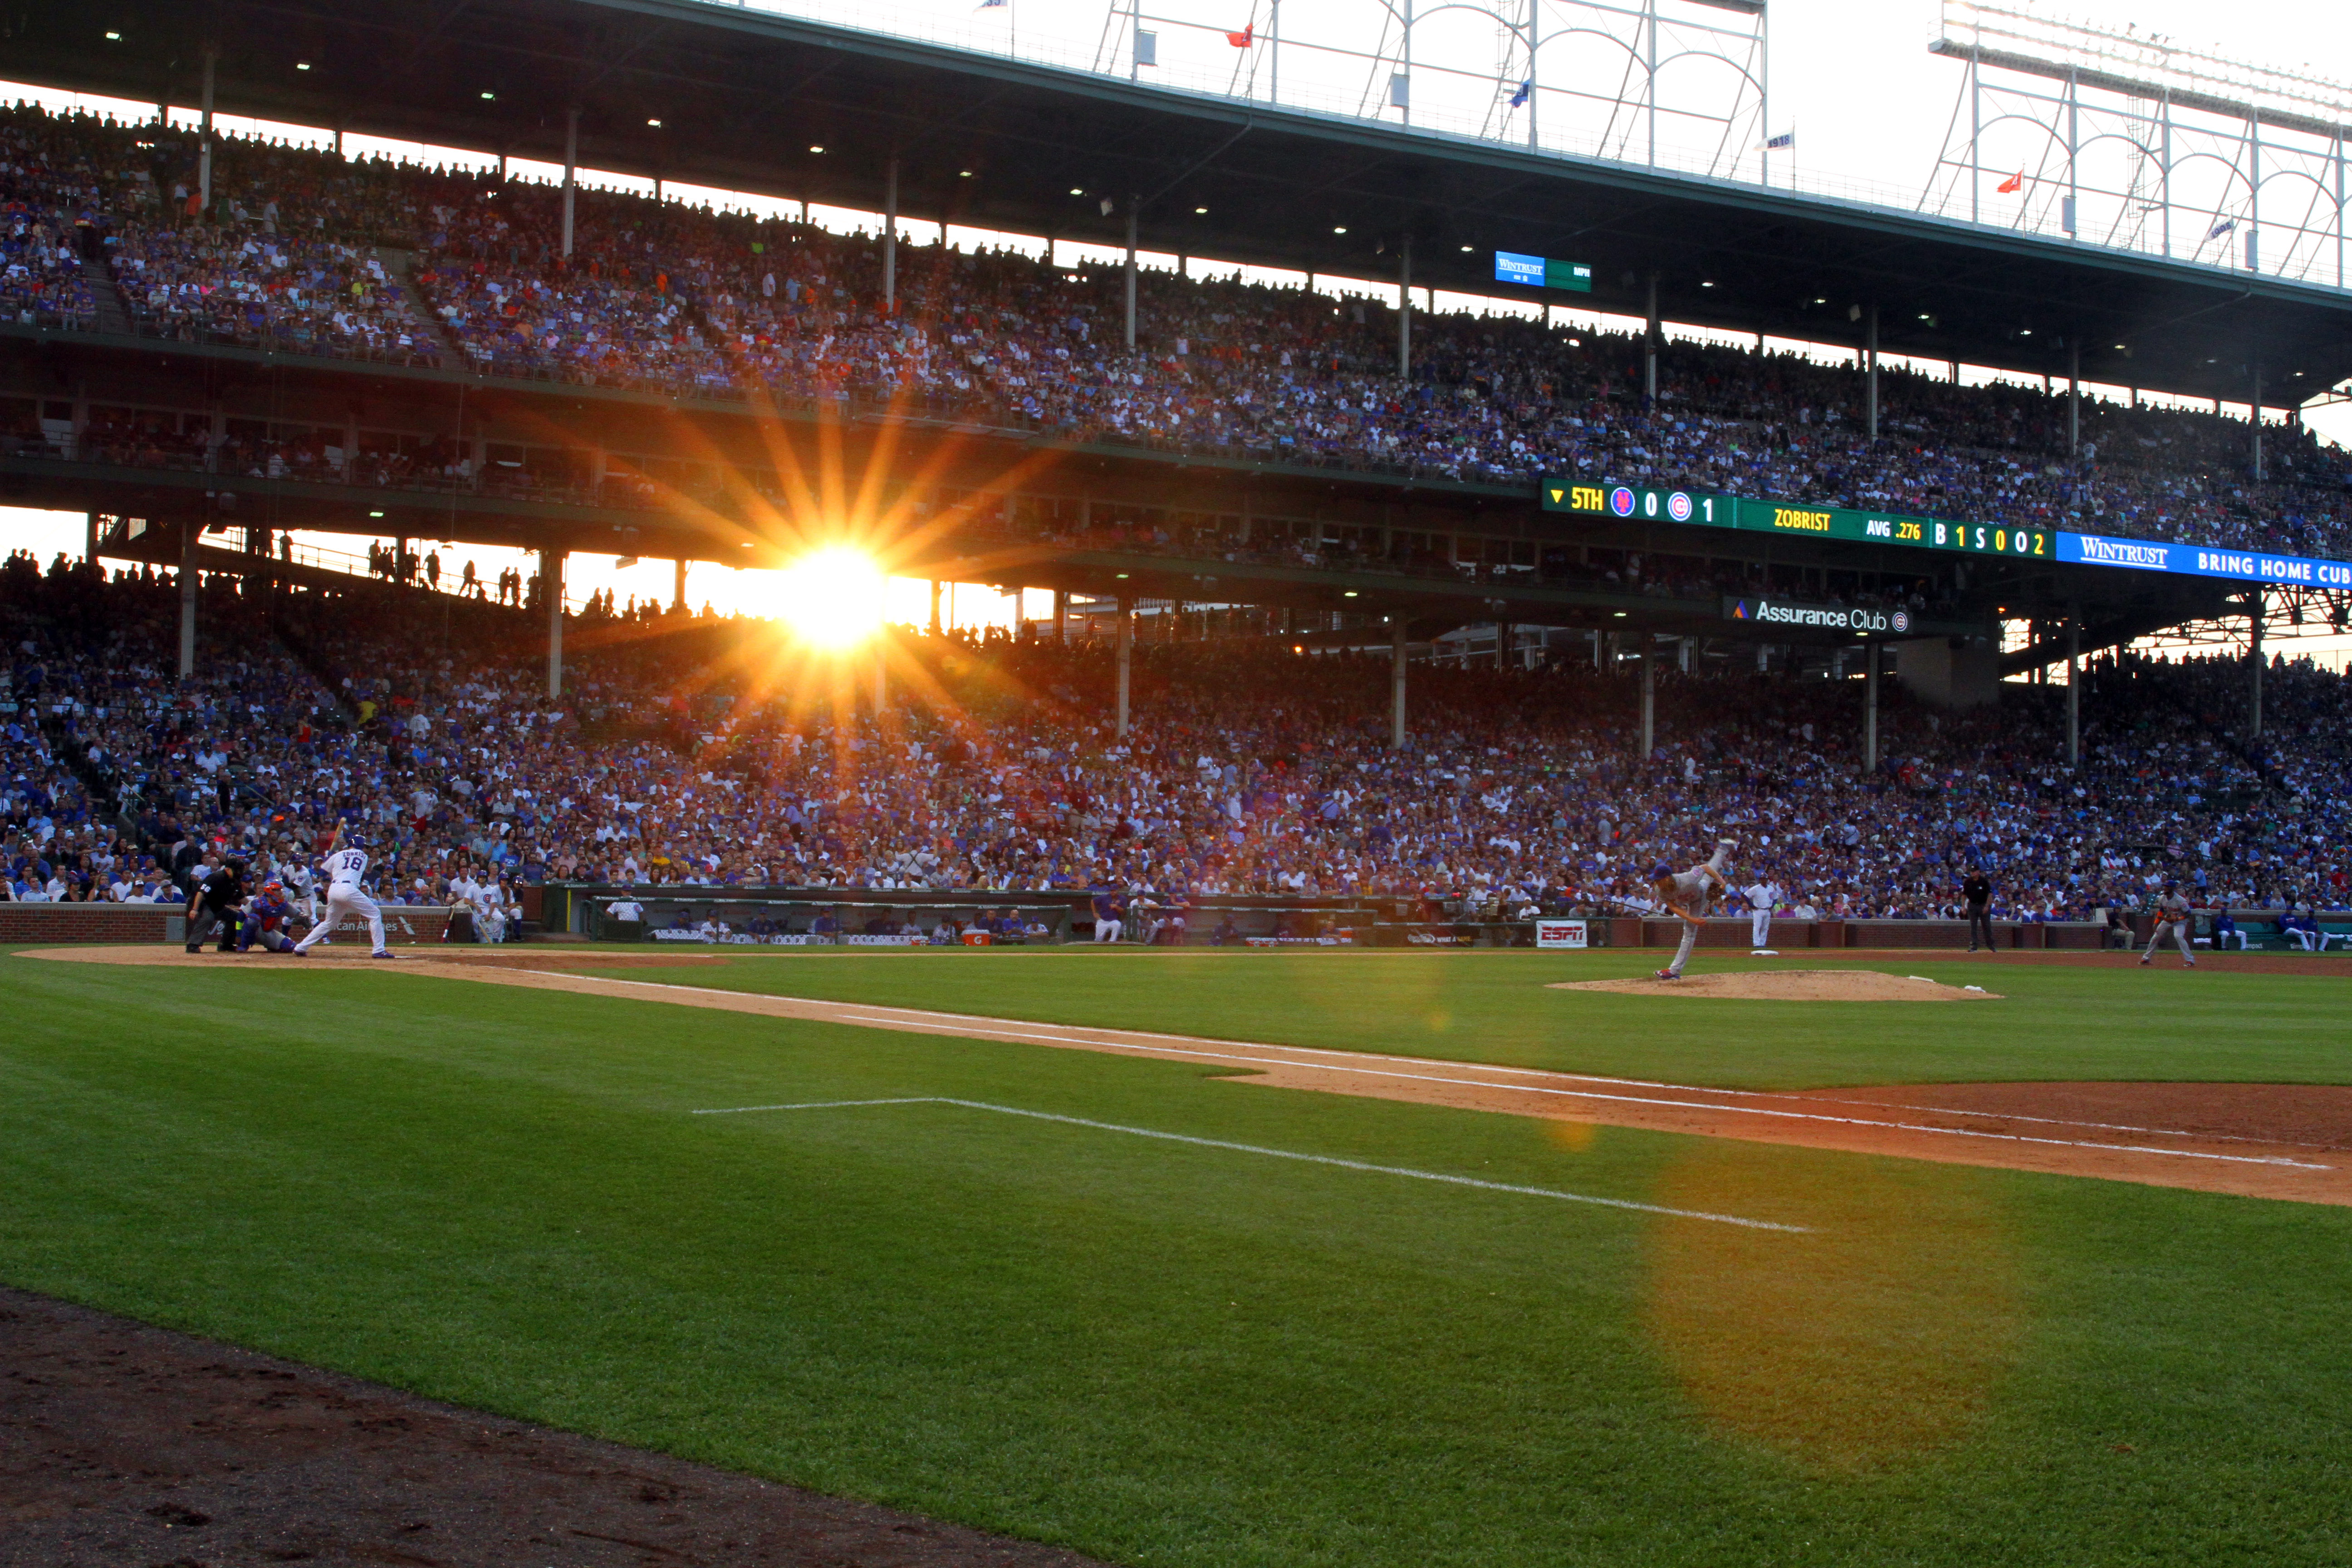 9392470-mlb-new-york-mets-at-chicago-cubs